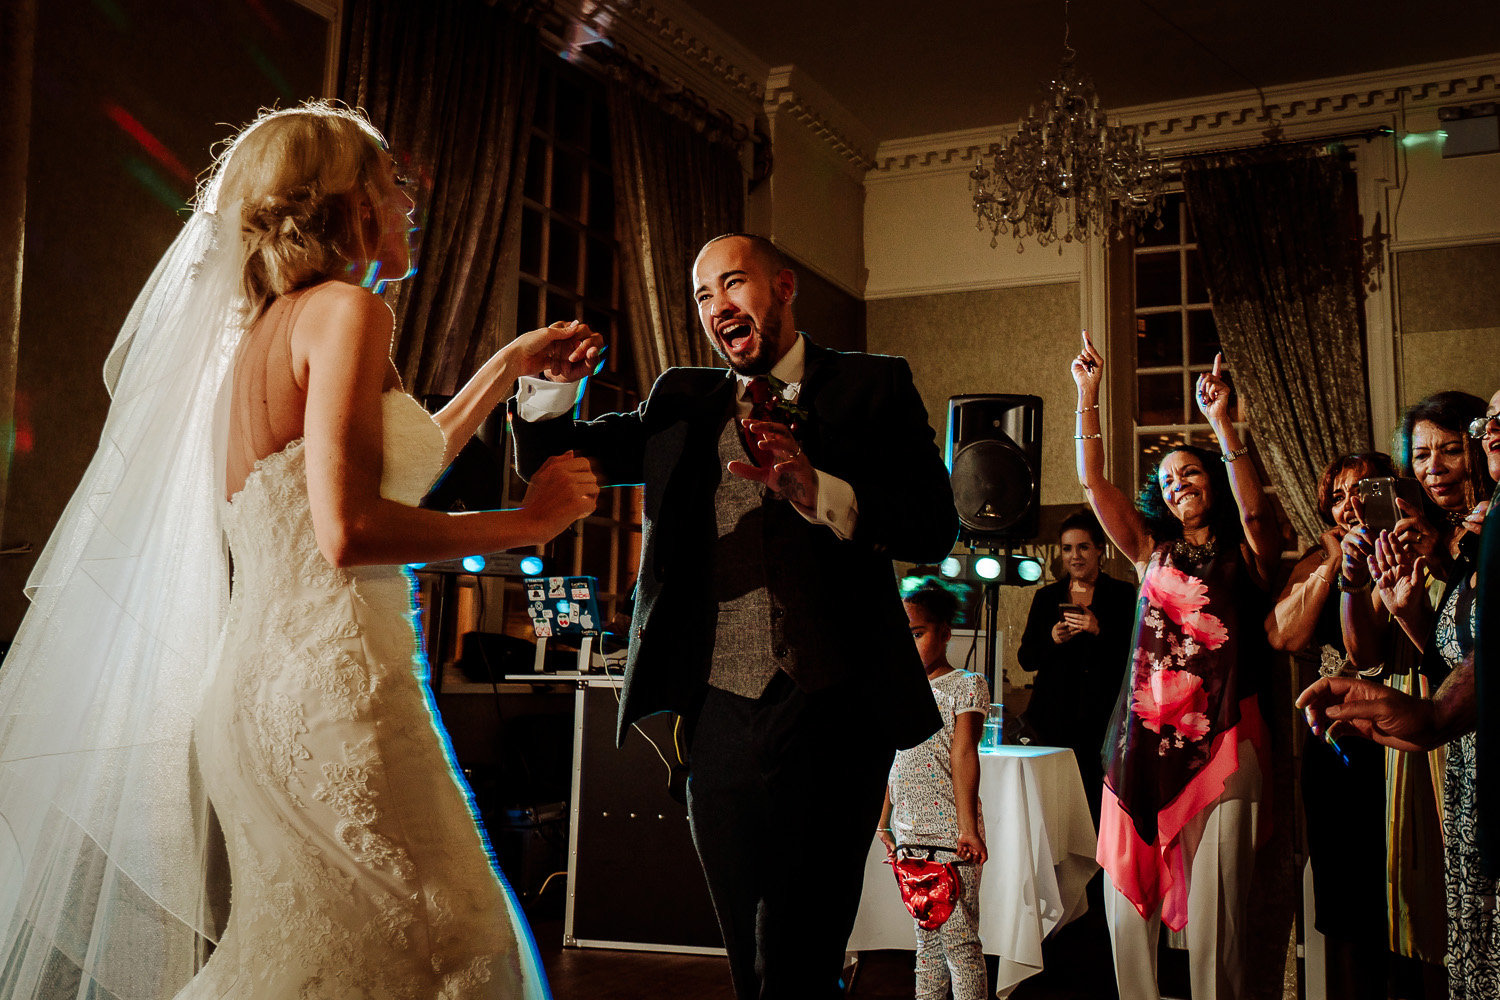 groom smiling and dancing with bride as crowd cheer